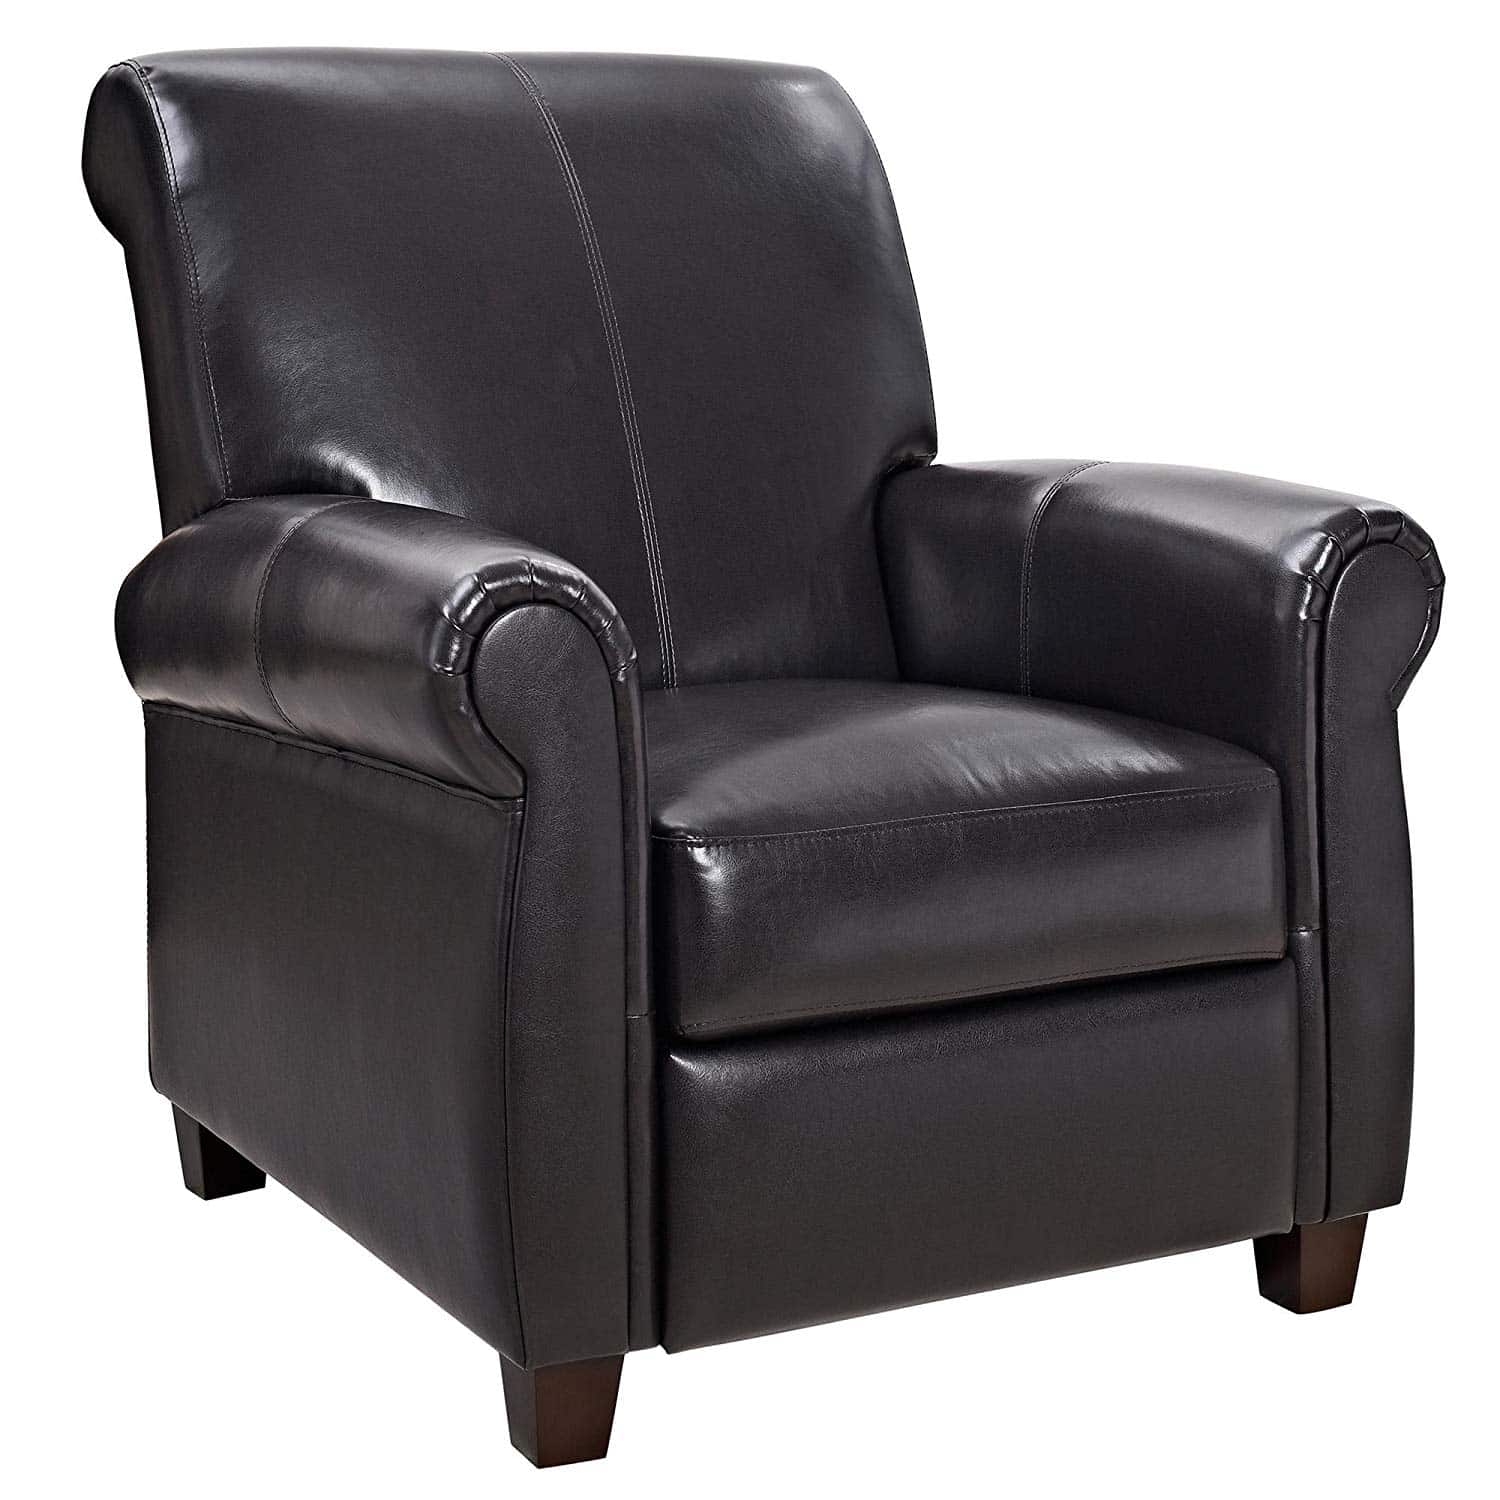 12 Black Recliners under $200 – Ultimate Choice for Buyers ...